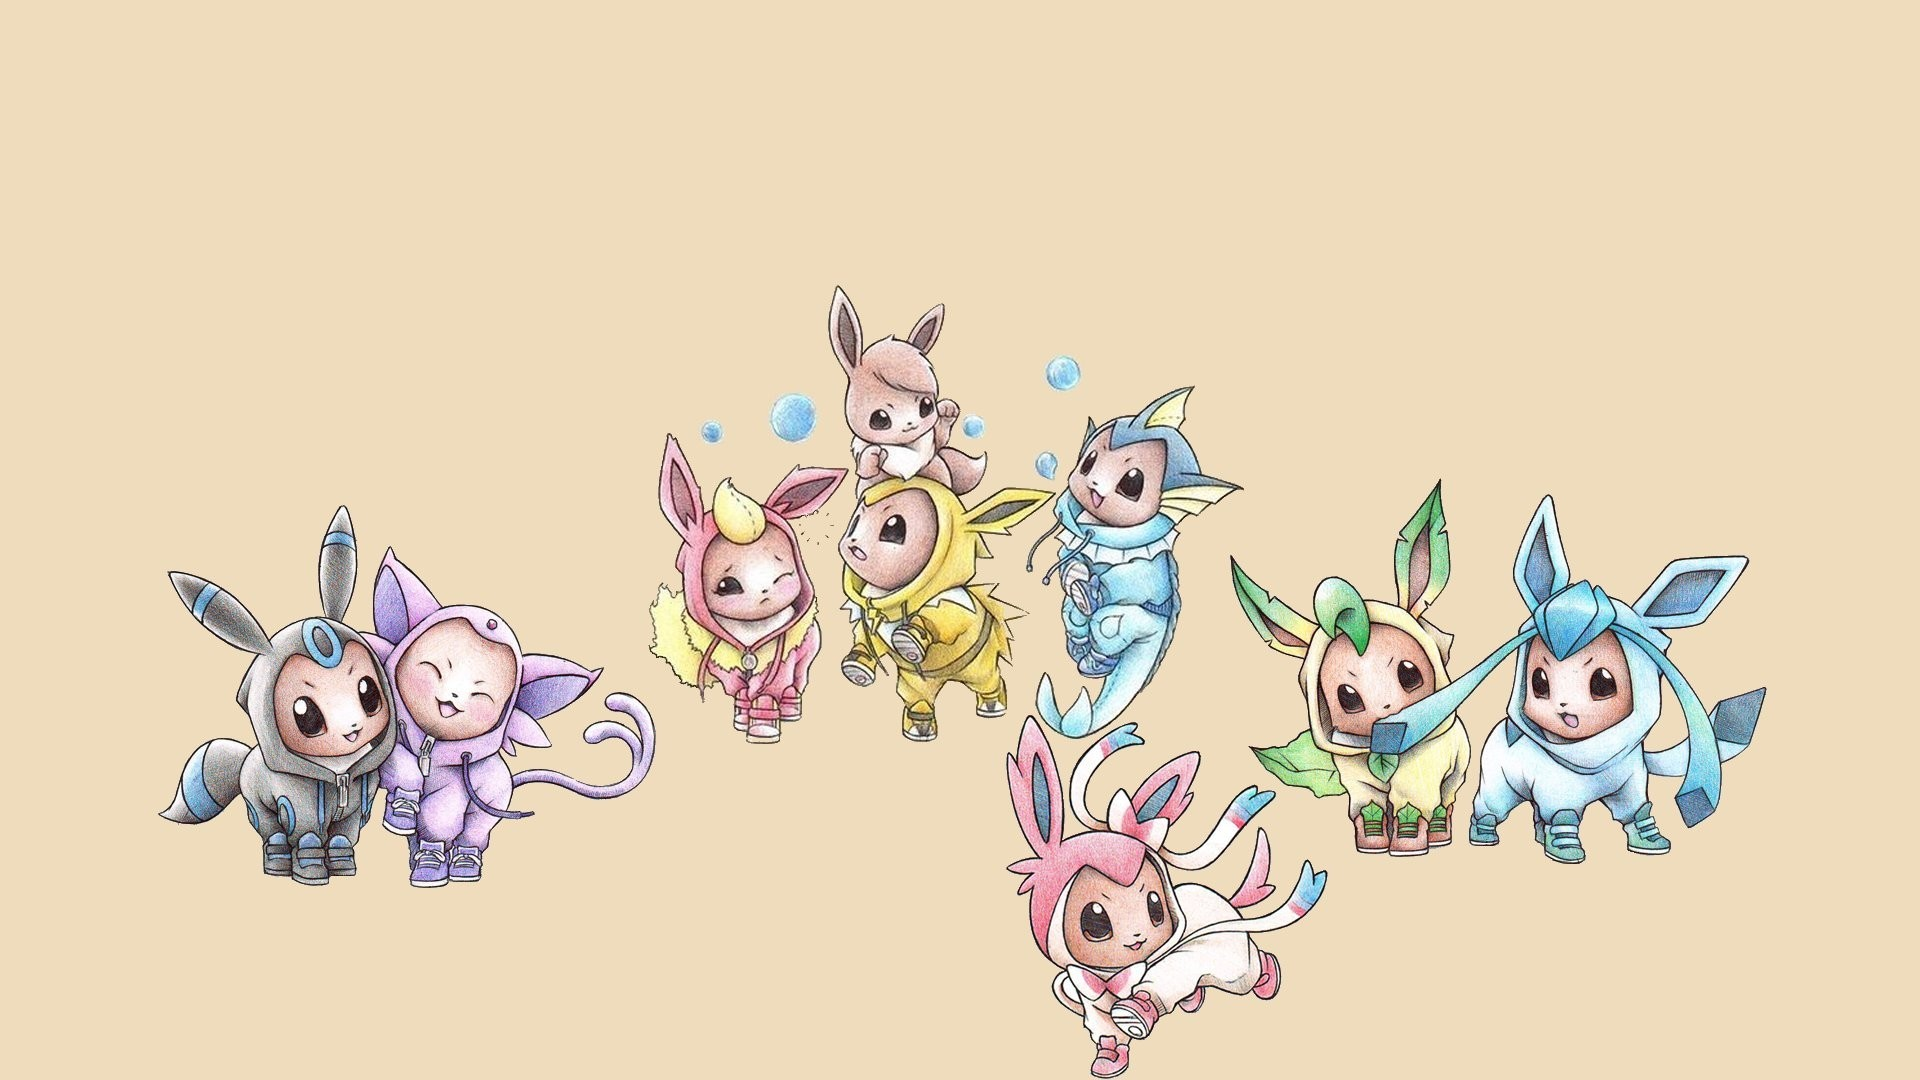 eeveelutions wallpaper - photo #14